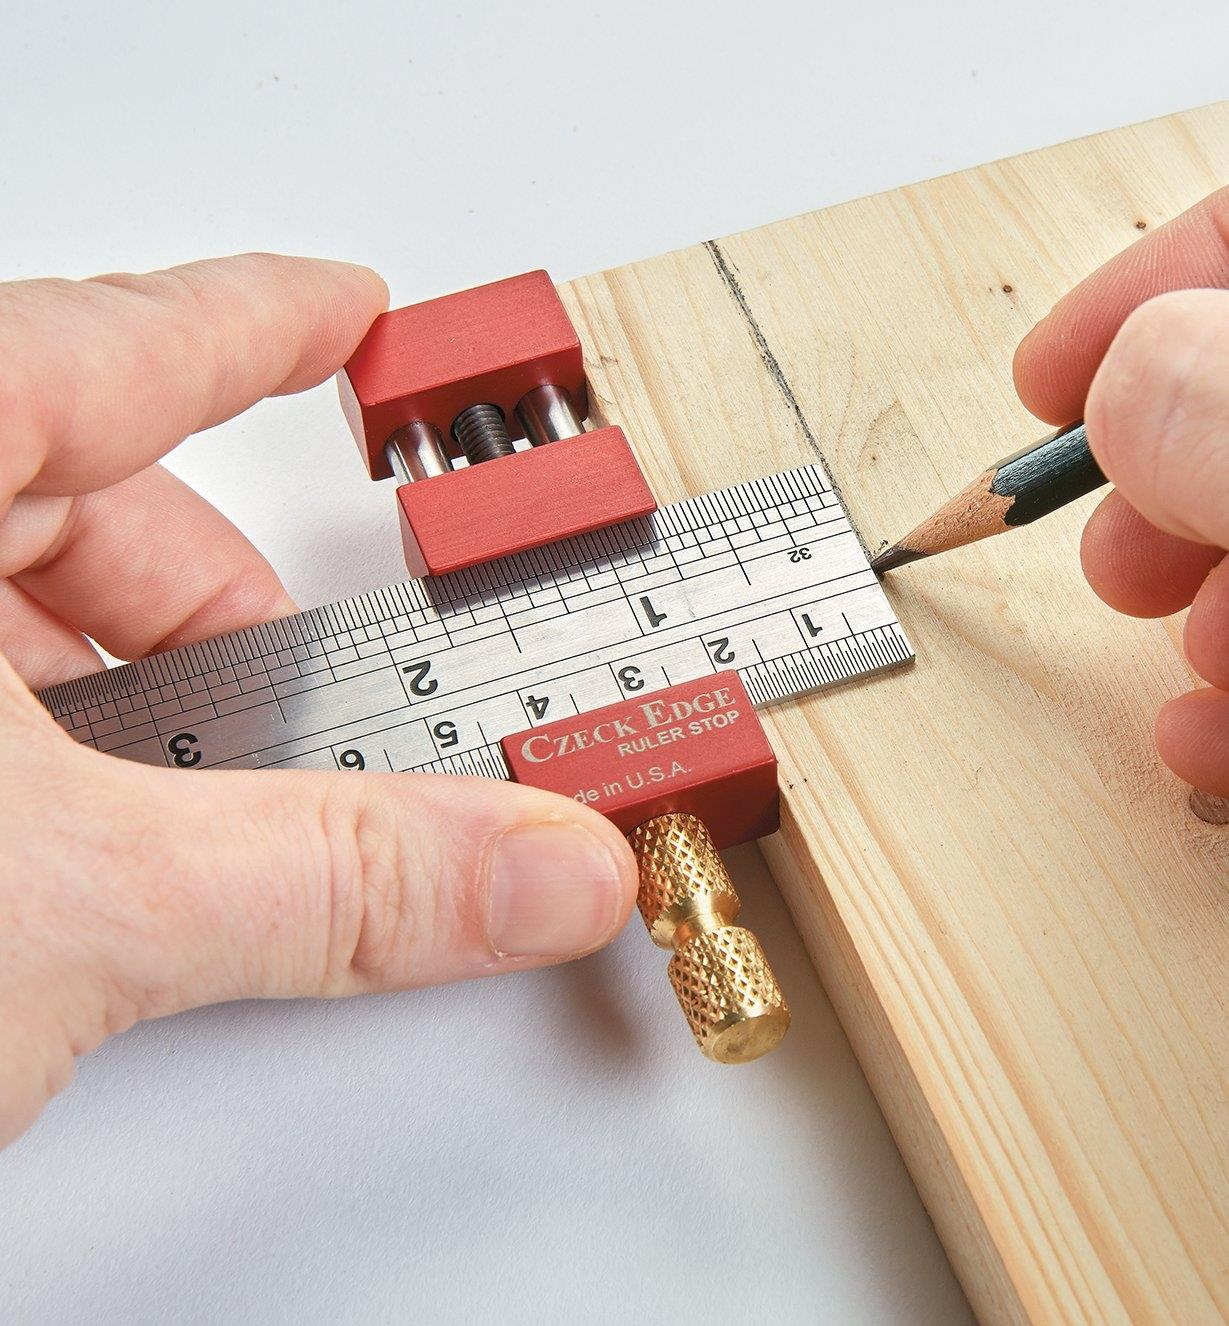 16N0105 - Czeck Edge Ruler Stop